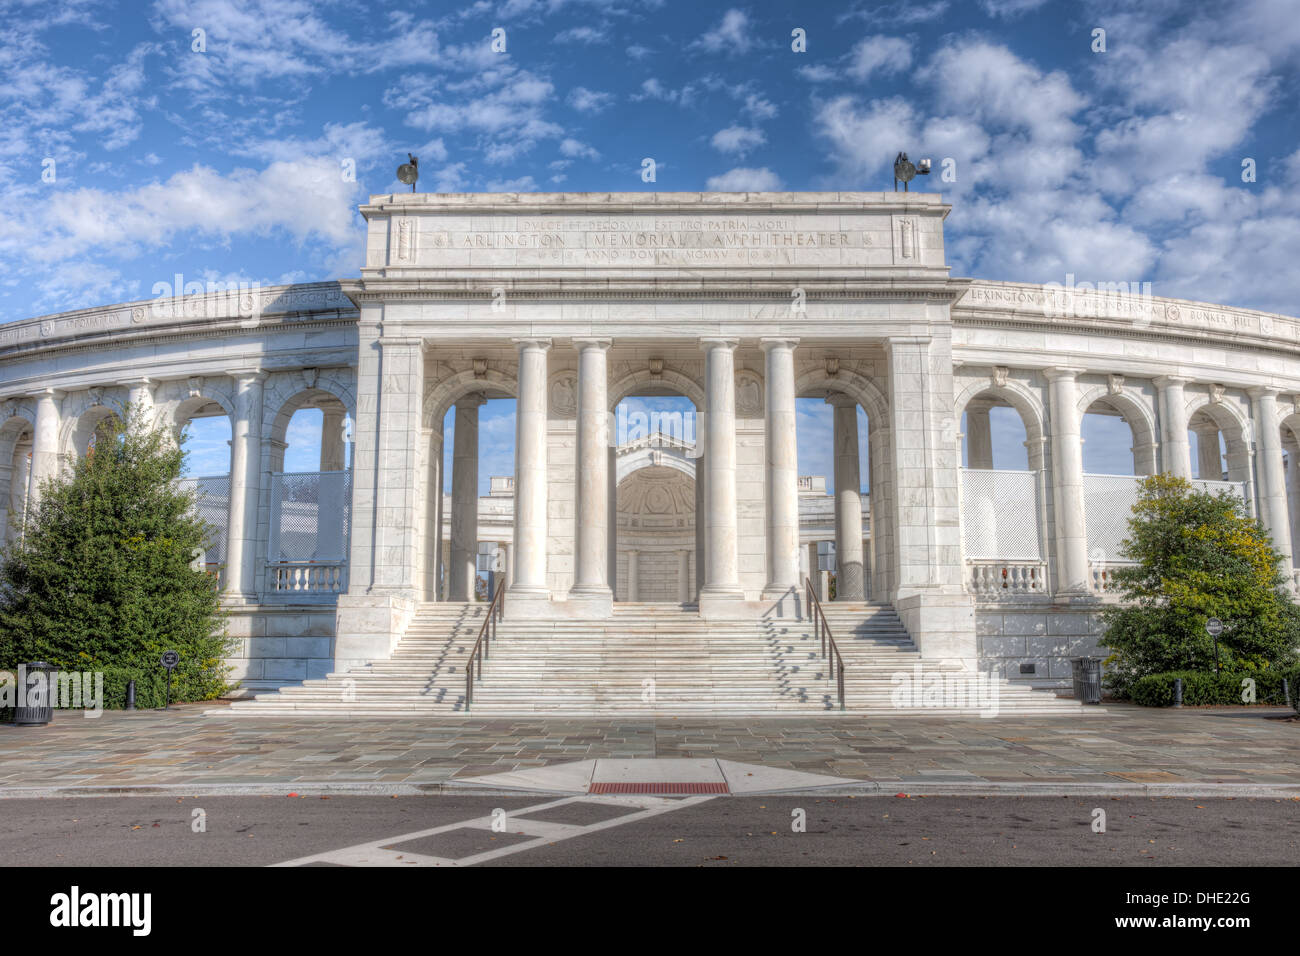 Arlington Memorial Amphitheater sits empty under partly cloudy skies on a warm autumn afternoon. - Stock Image